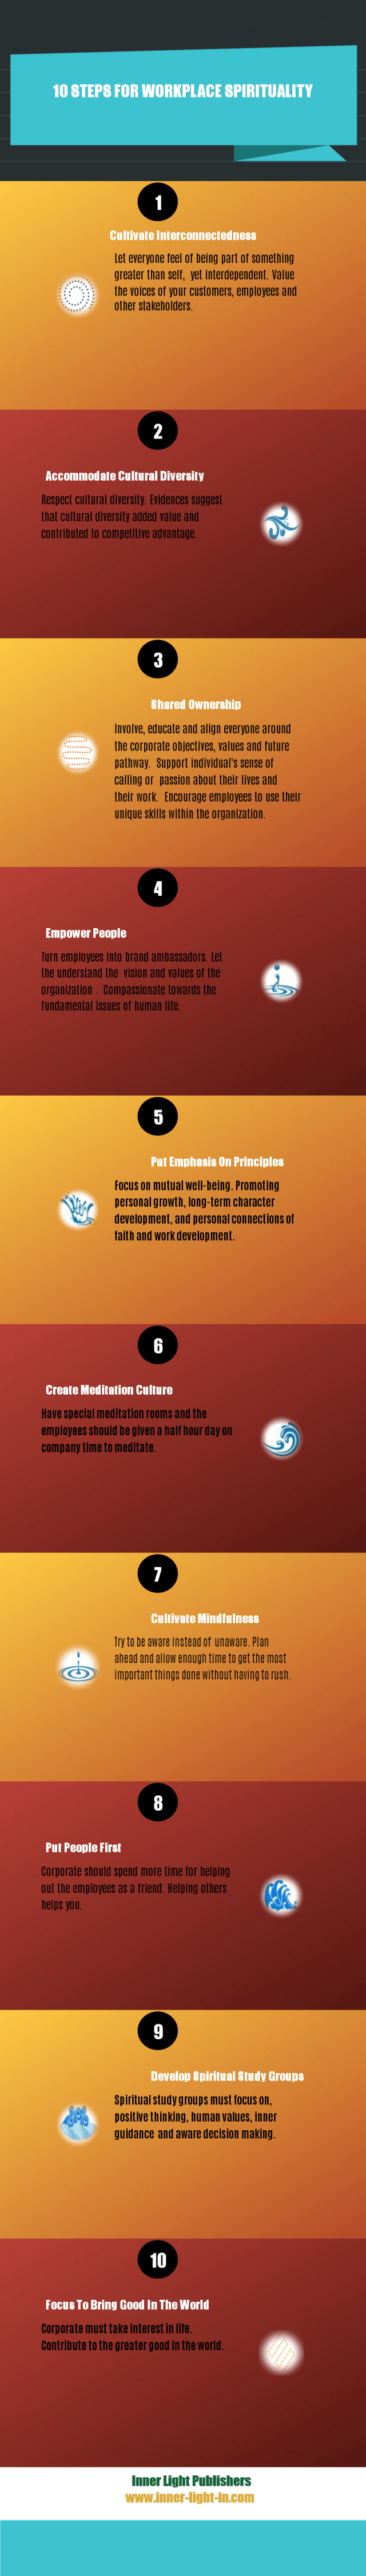 10 steps for workplace spirituality infographic